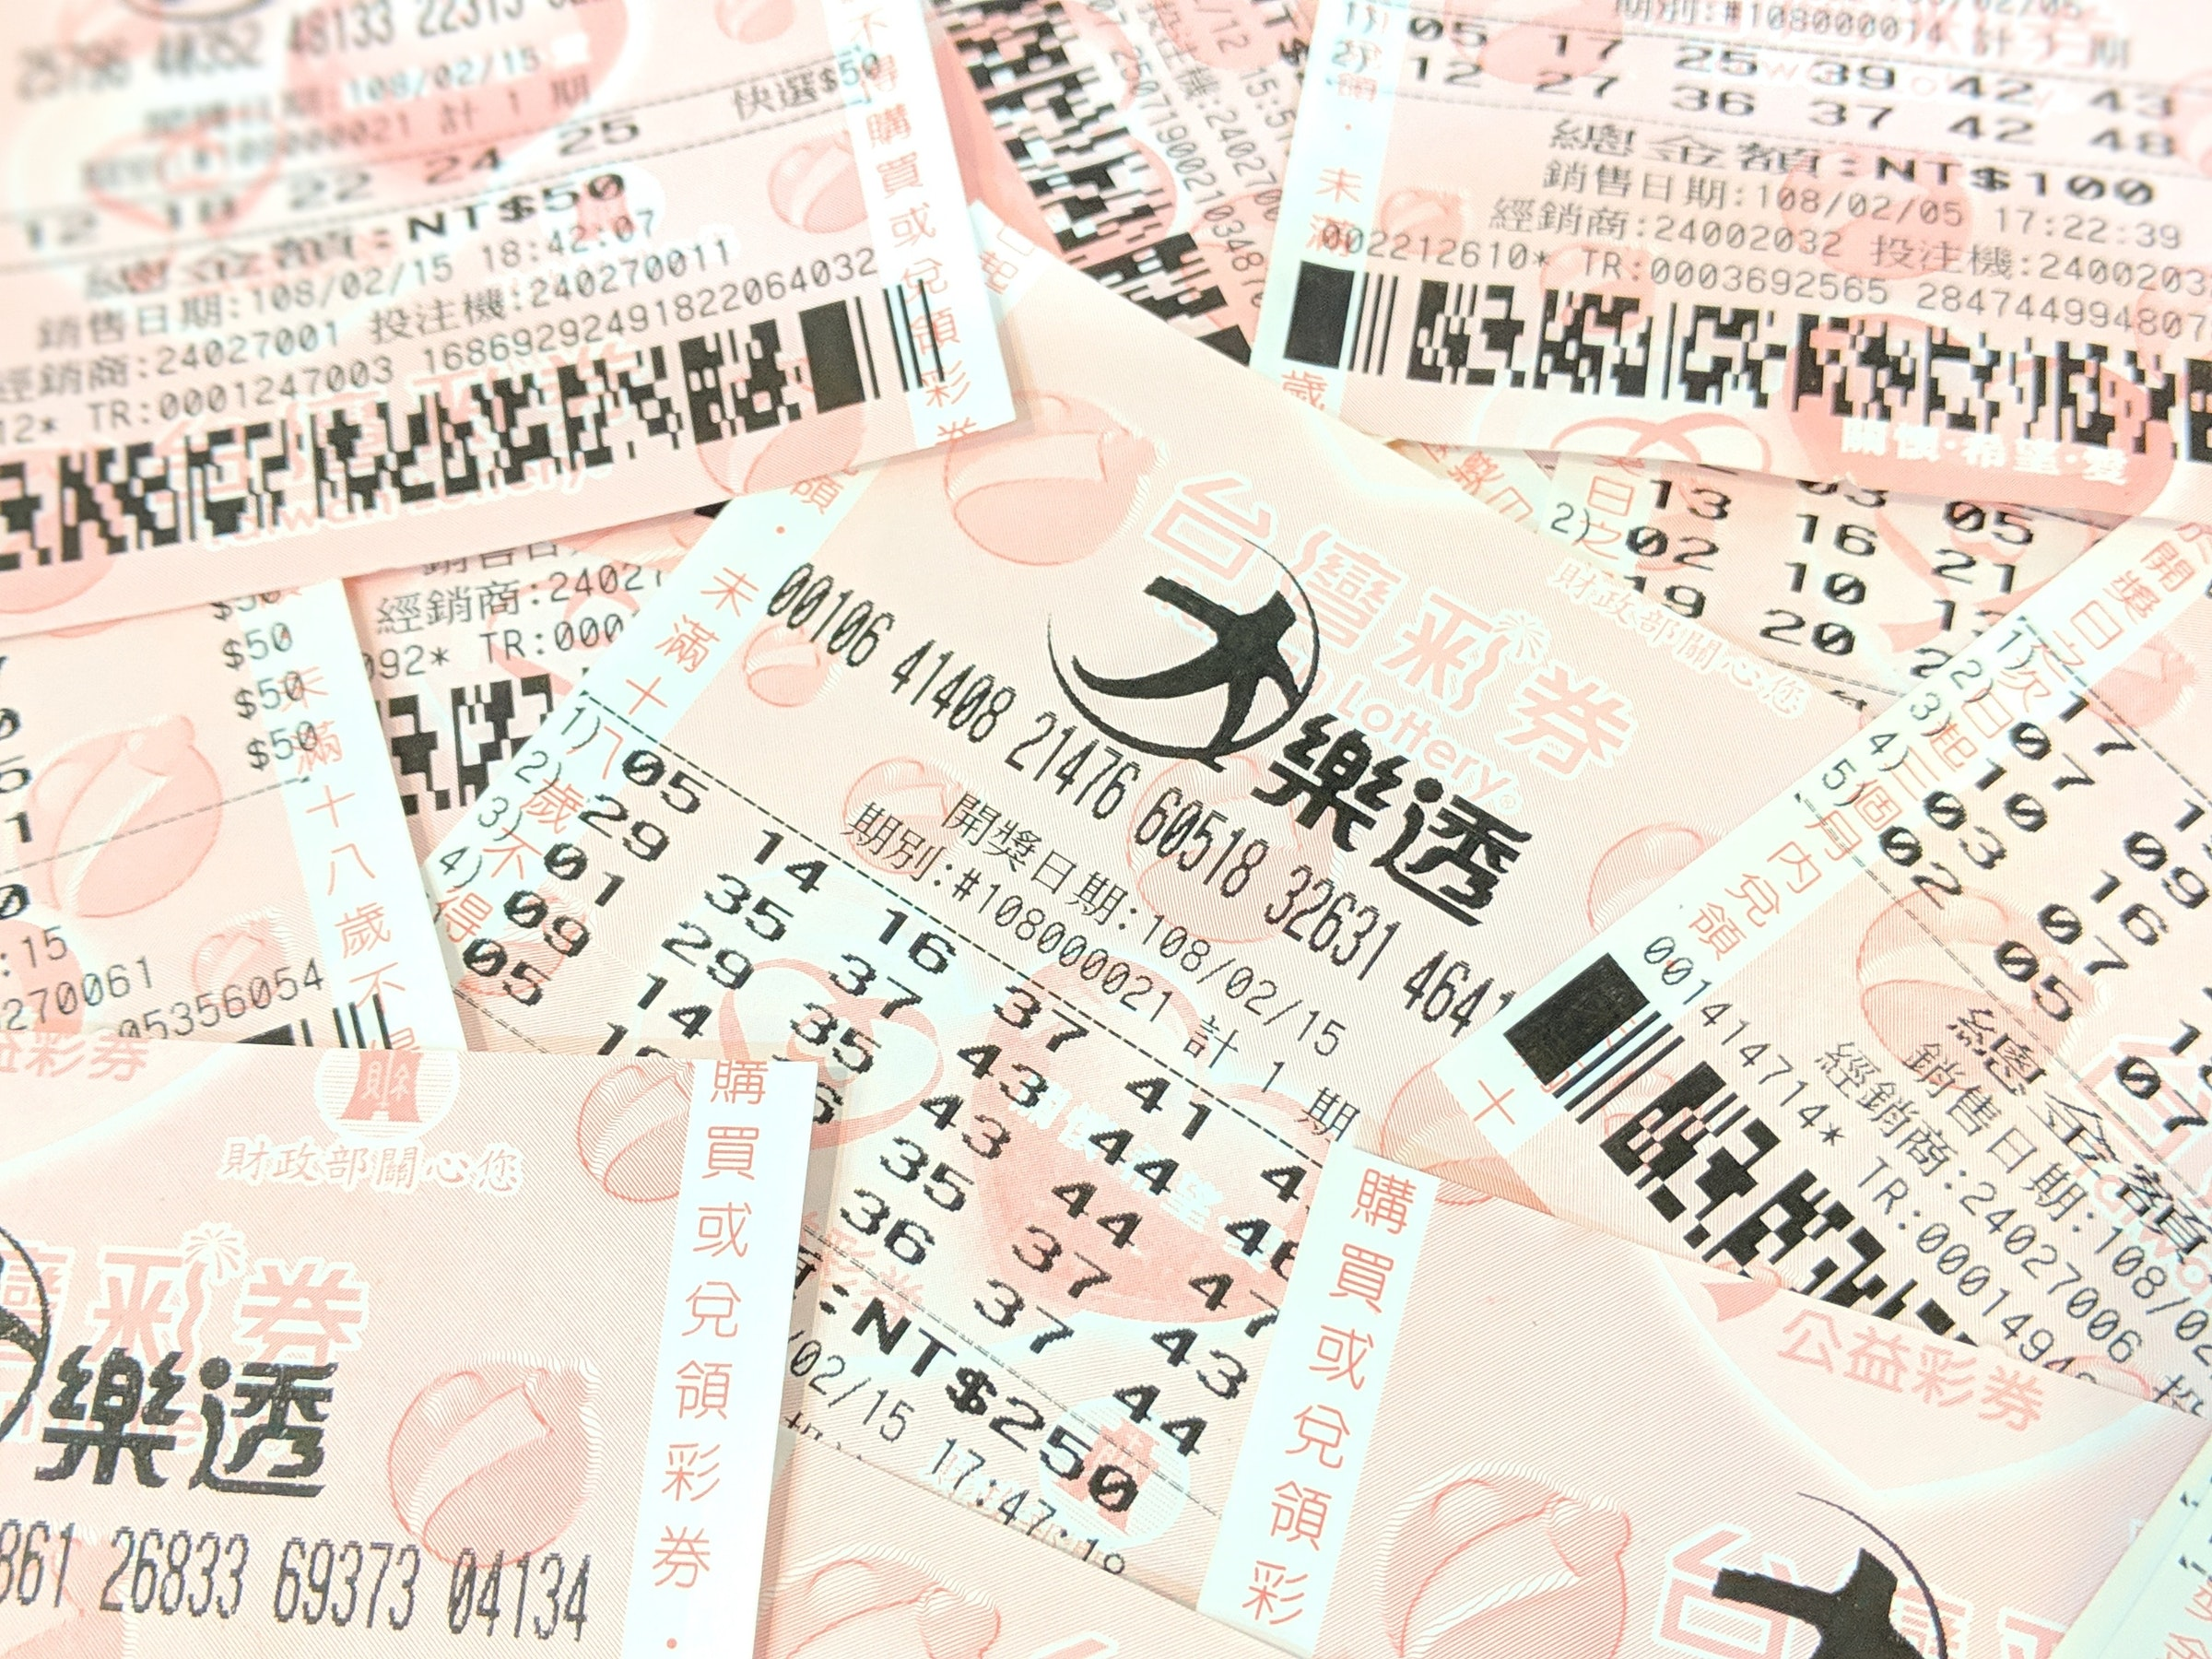 Taiwan Lottery, , Lottery, Apbalvojums, Online and offline, Live television, , , , 3G, 大 樂 透, Text, Font, Line, Ticket, Paper